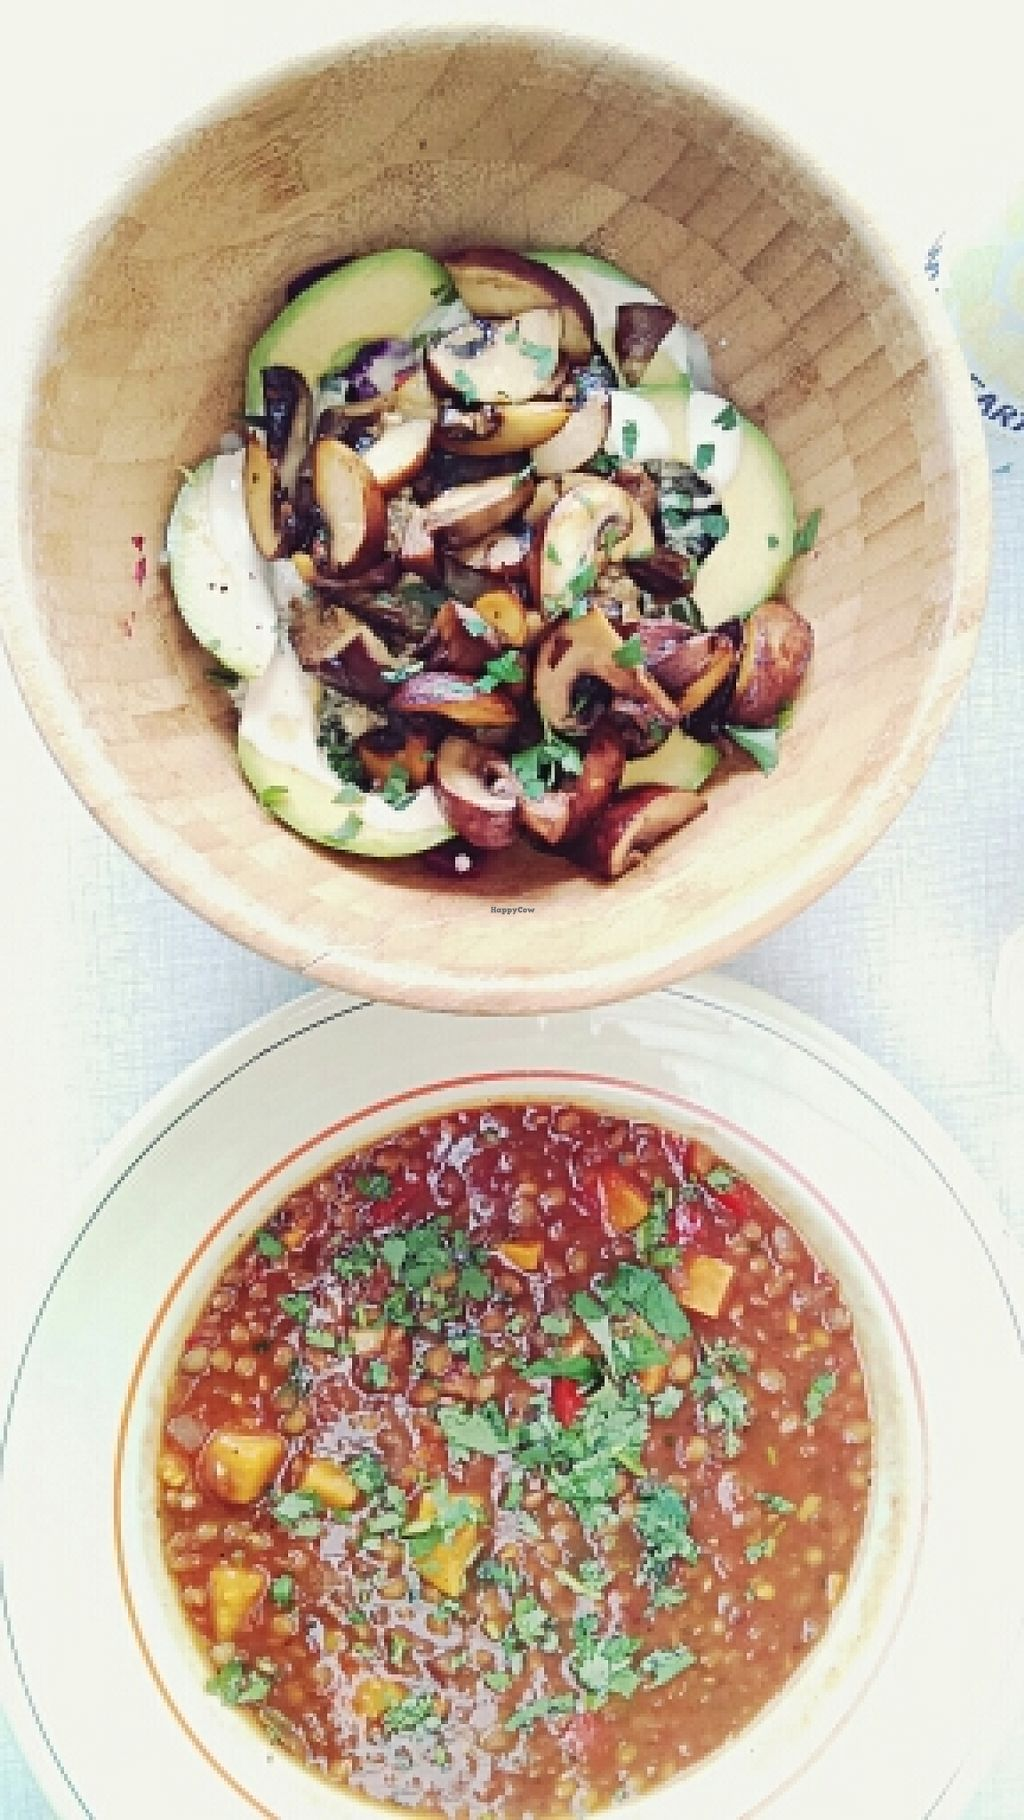 "Photo of Strandfield House Coffee Shop  by <a href=""/members/profile/InHerImagePhoto"">InHerImagePhoto</a> <br/>quinoa bowl and soup! <br/> June 22, 2016  - <a href='/contact/abuse/image/49339/155463'>Report</a>"